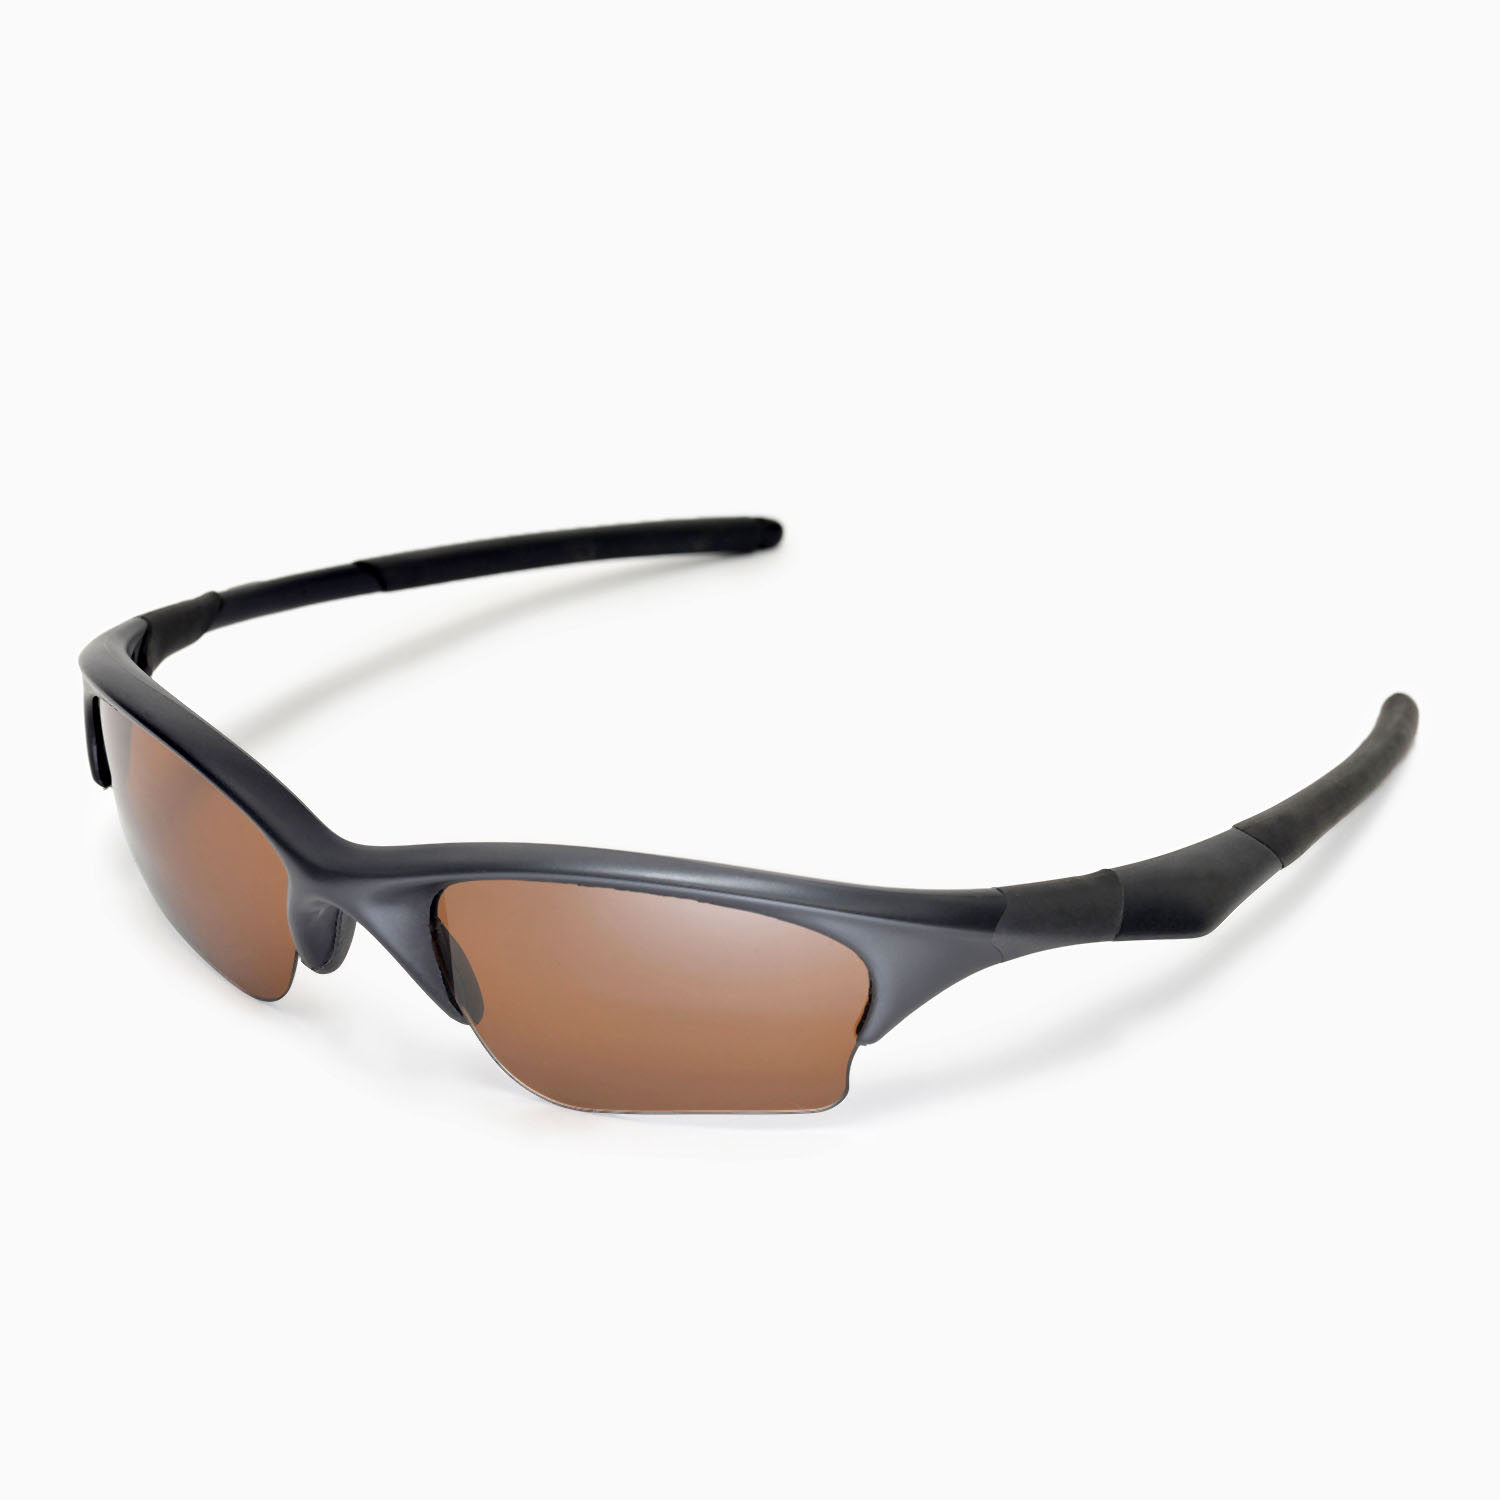 4c596e2a73 How To Replace Lenses In Oakley Half Jacket